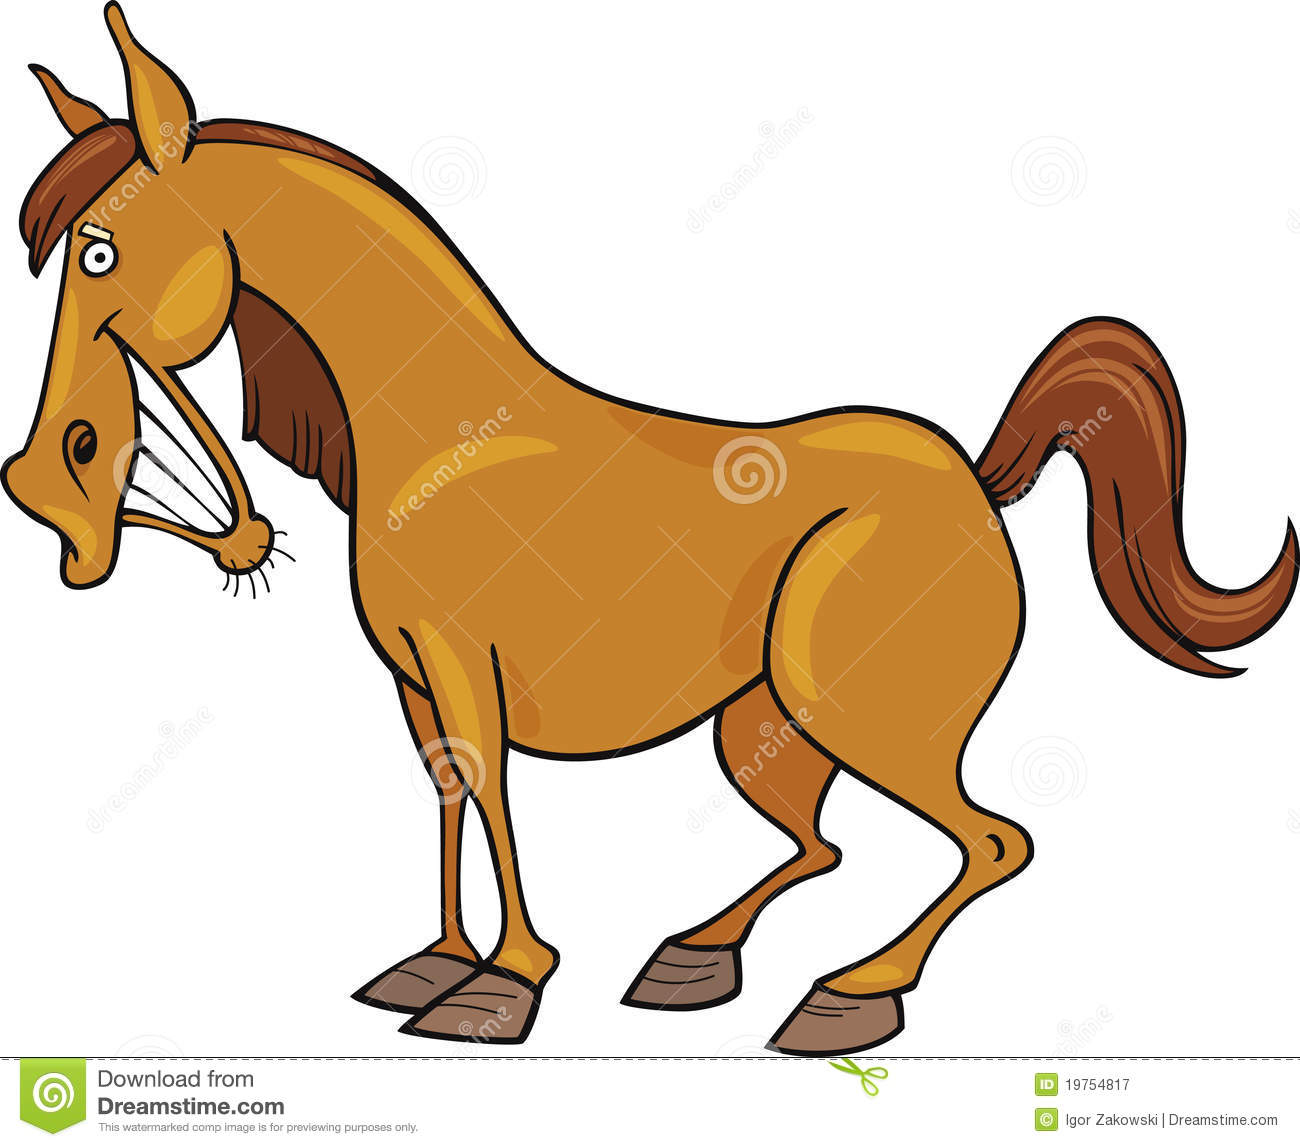 Cheval de dessin anim illustration de vecteur - Cheval dessin couleur ...